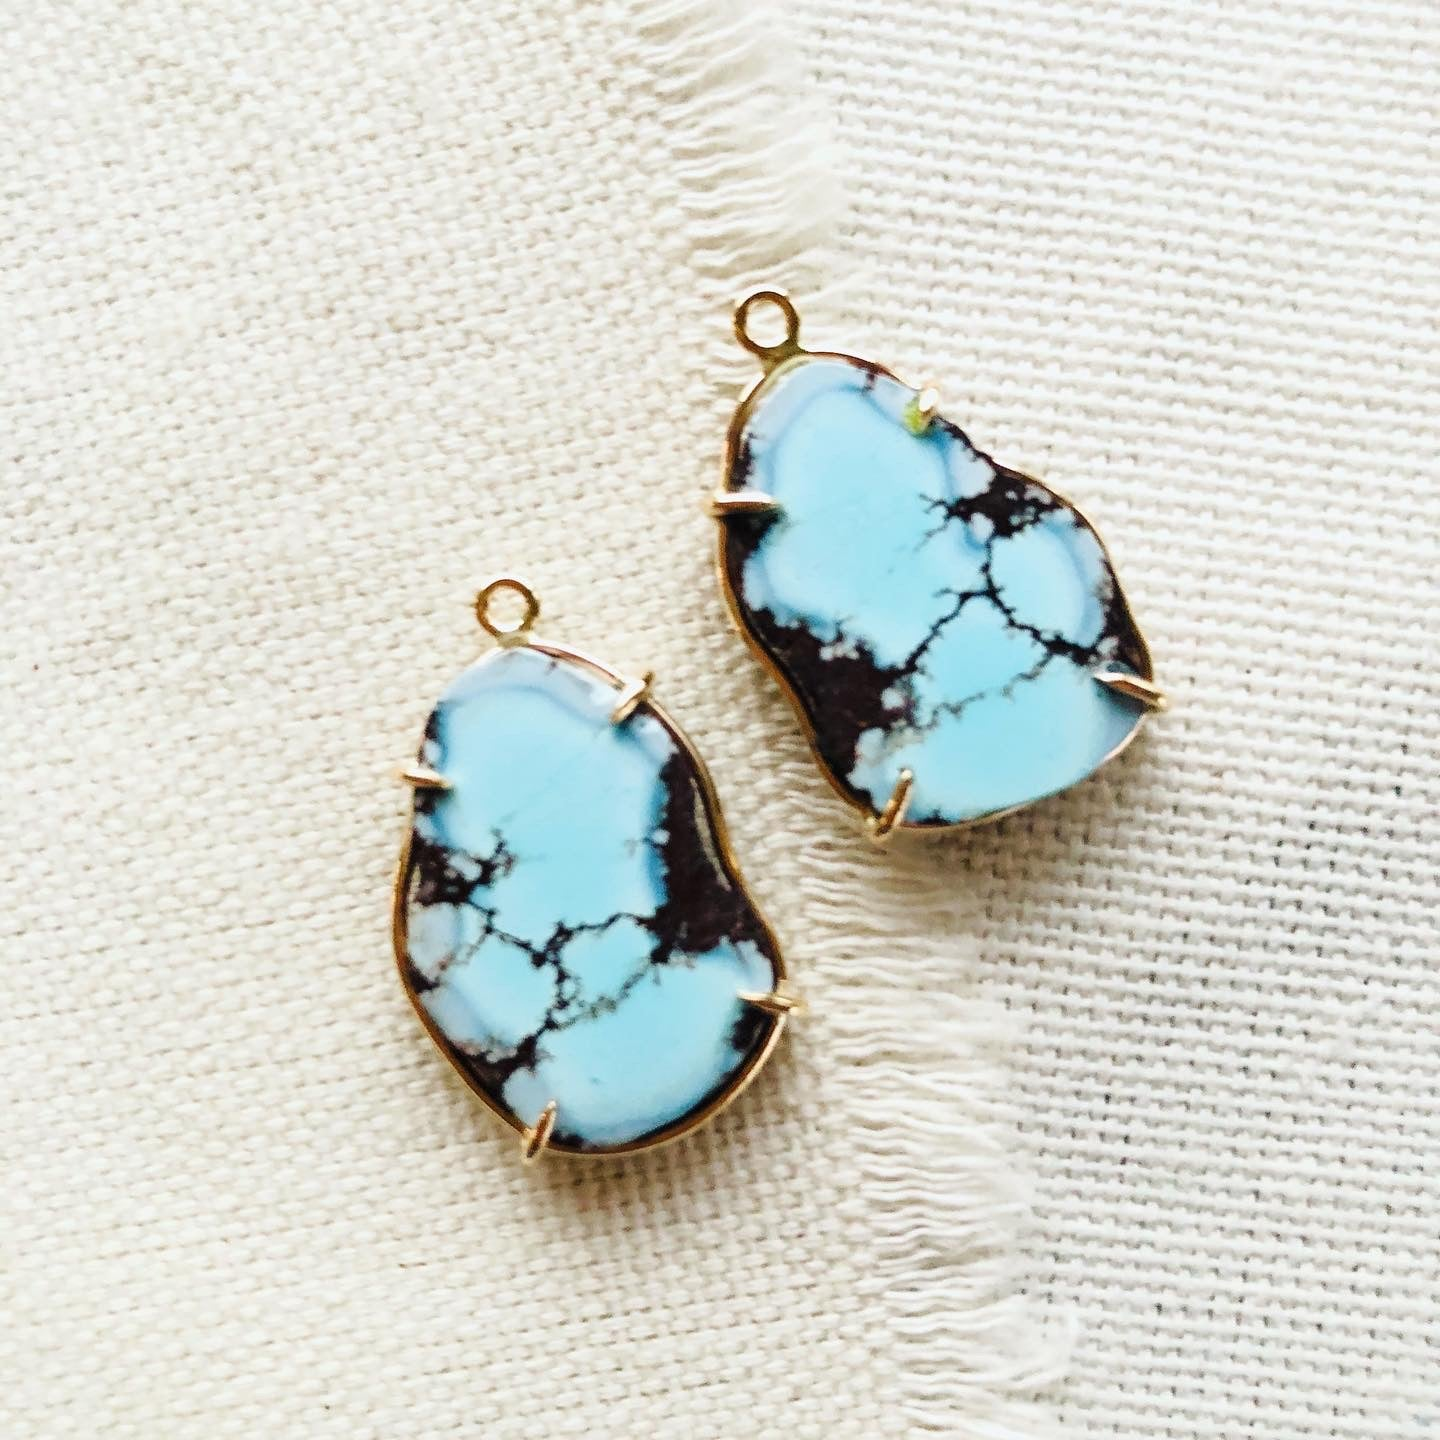 Kazakhstan Turquoise Earrings